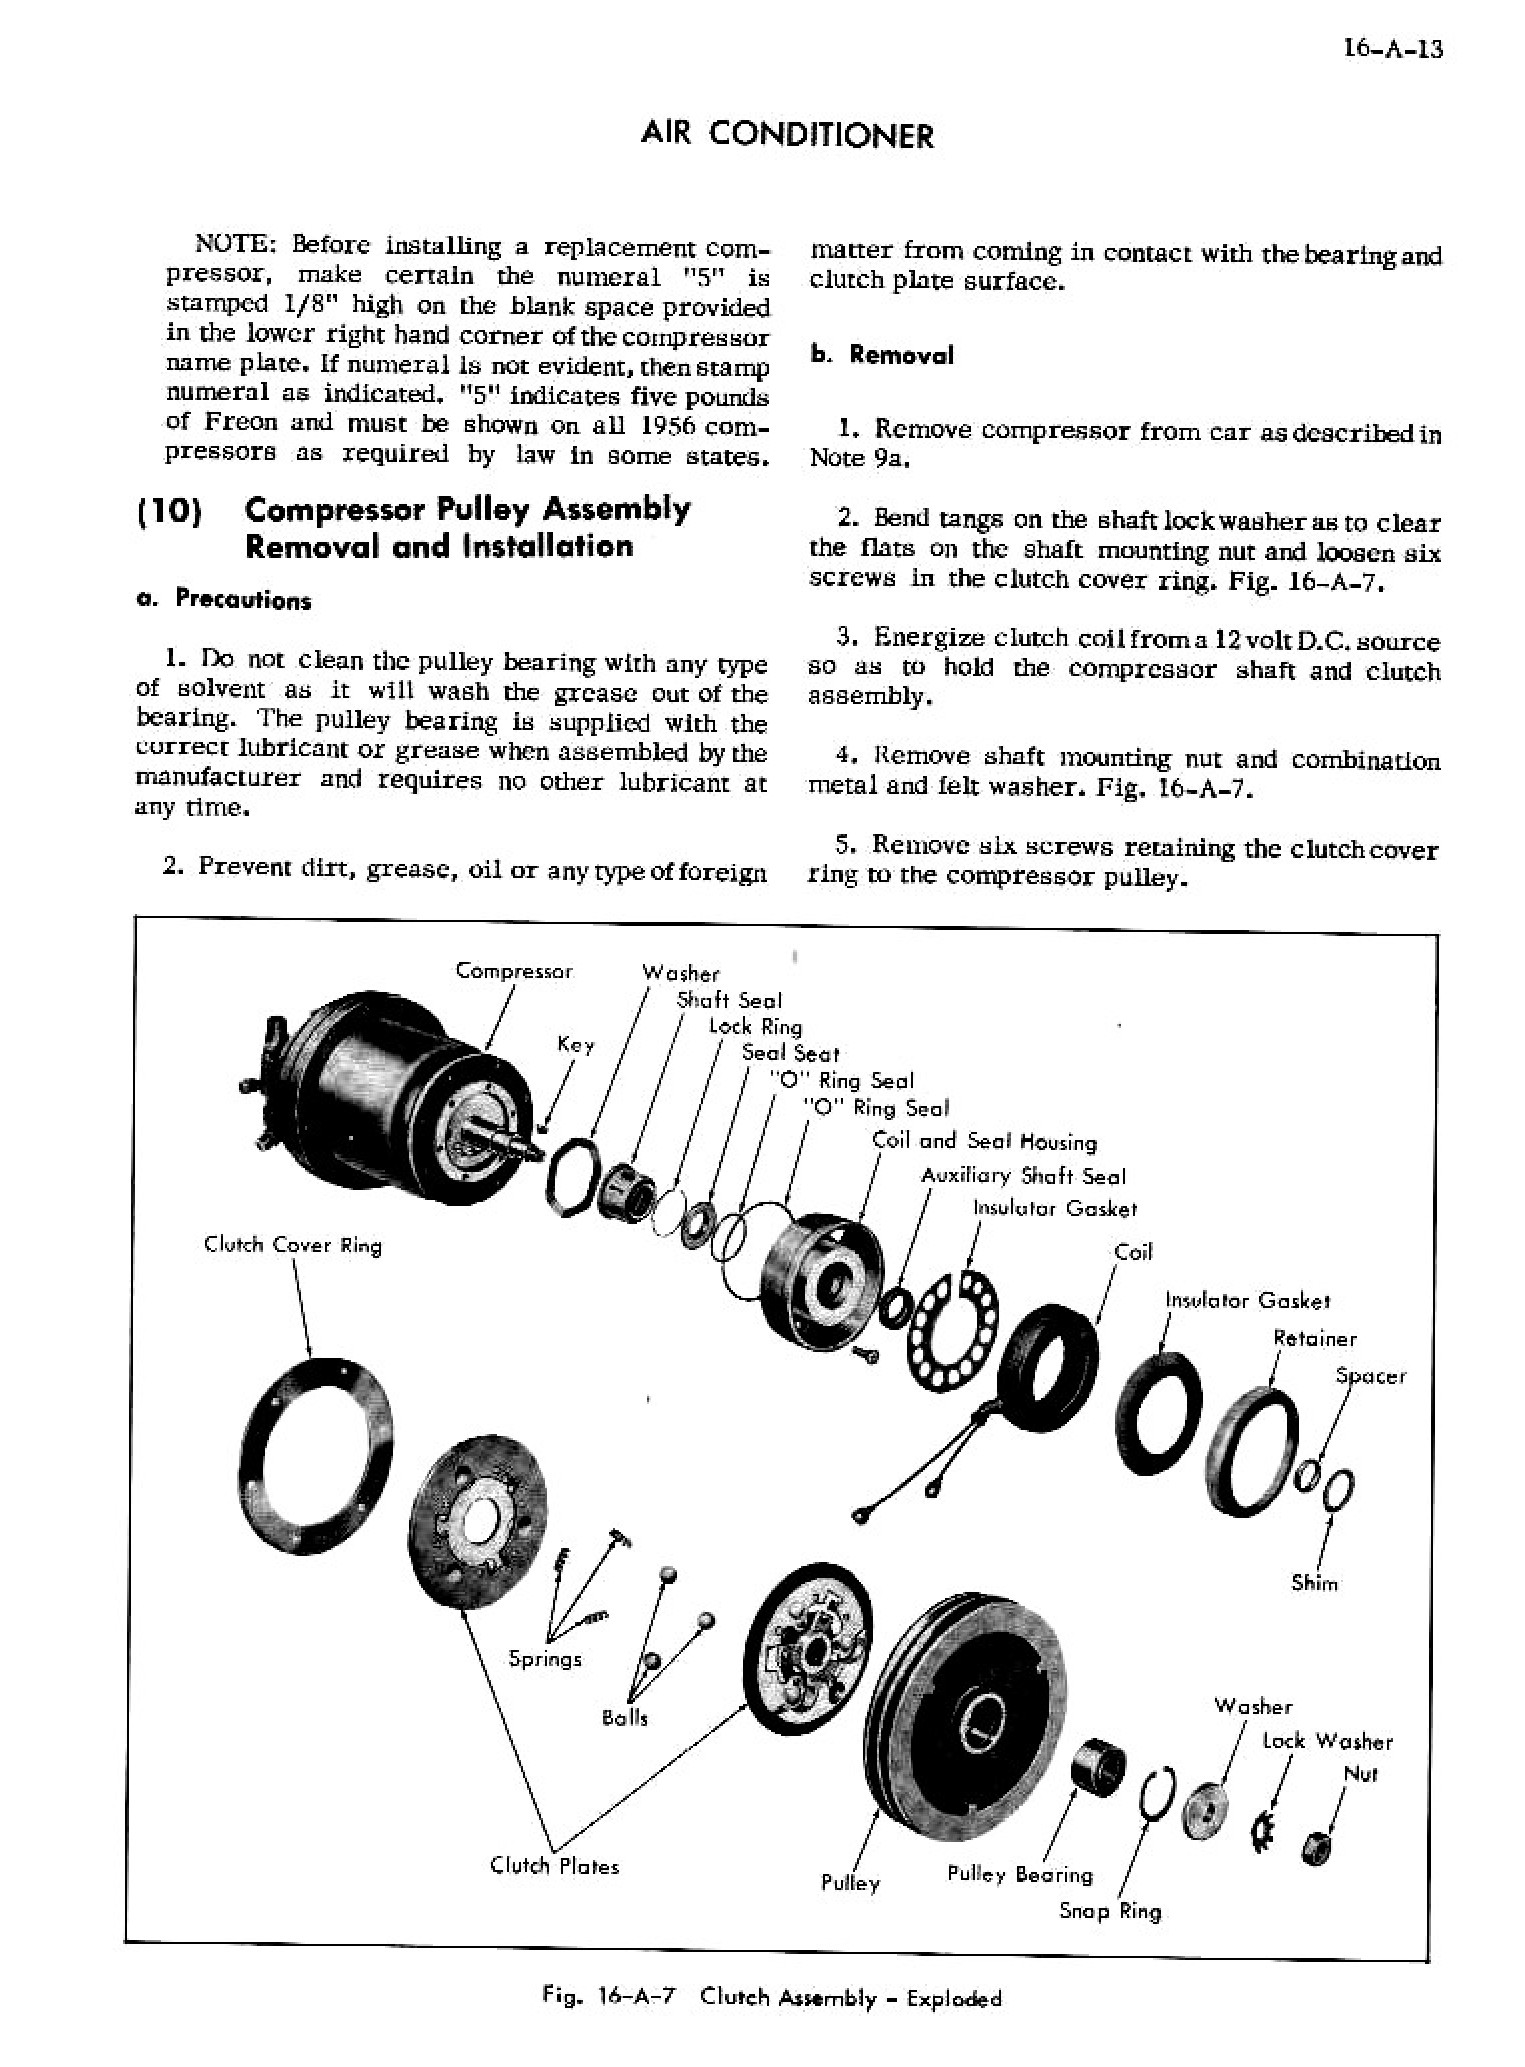 1956 Cadillac Shop Manual- Accessories Page 13 of 45